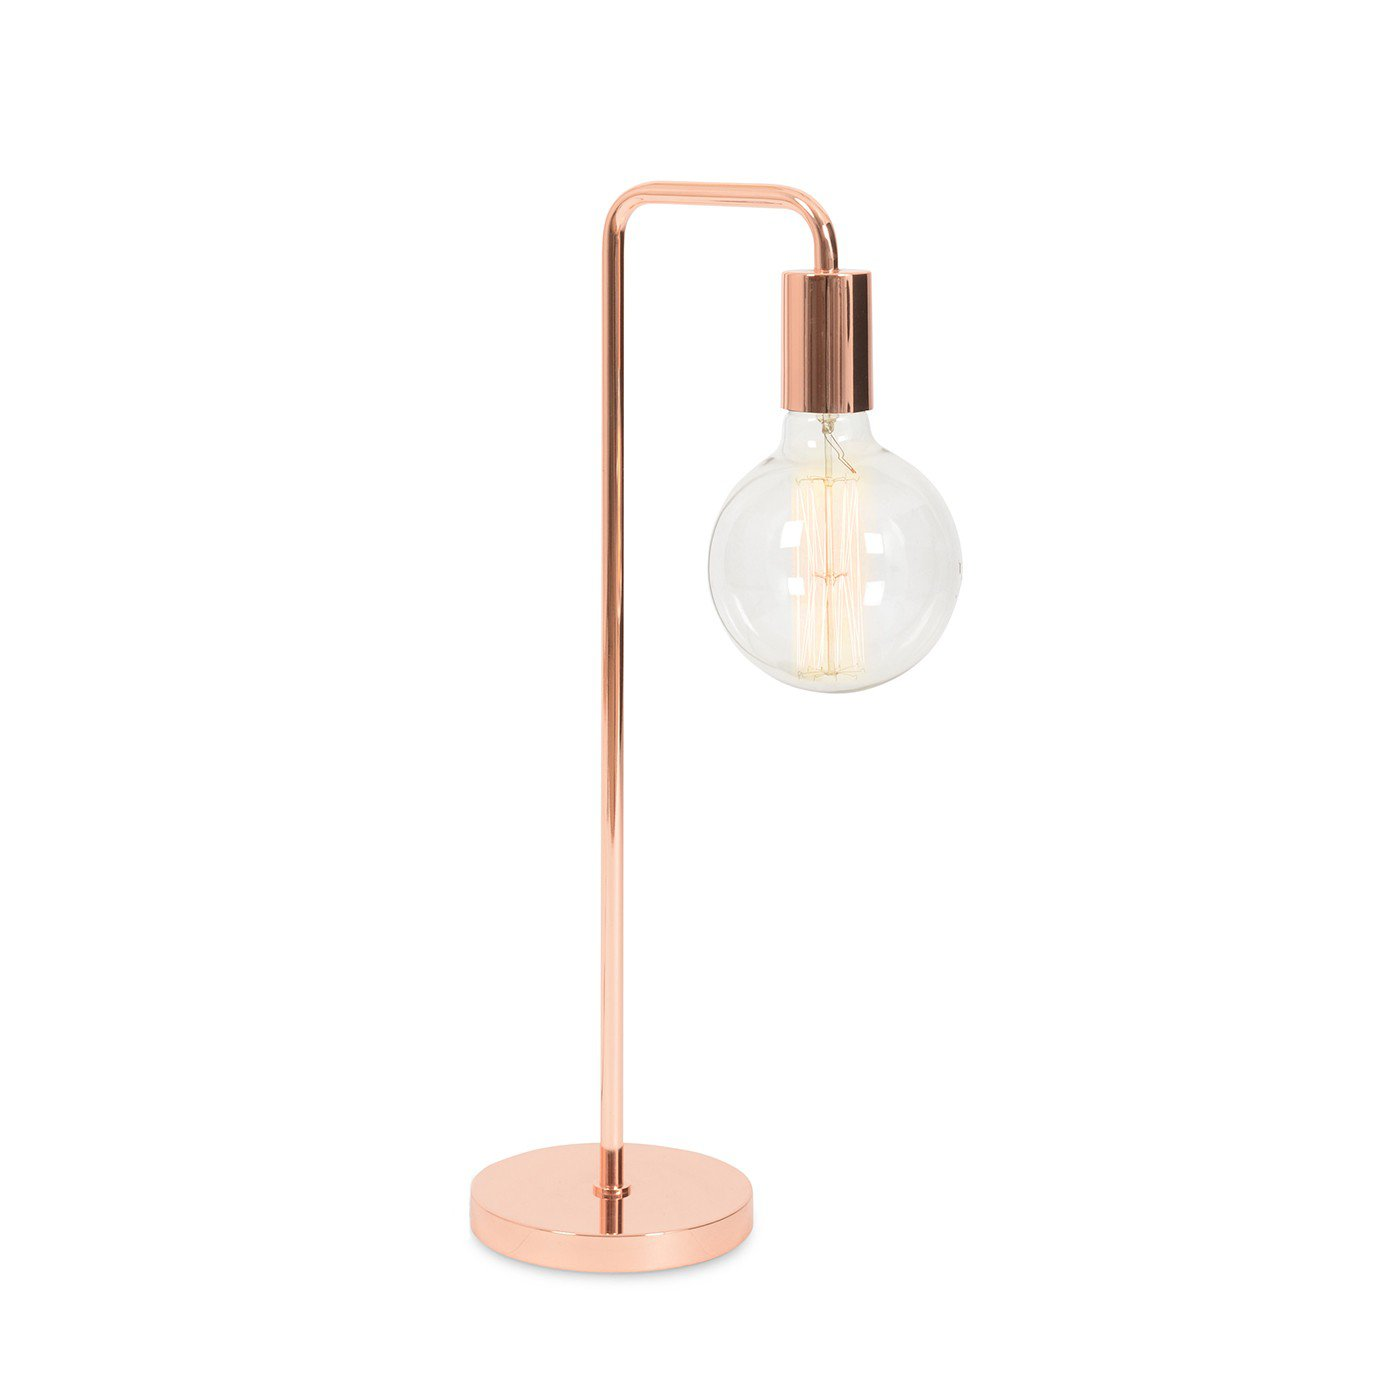 Copper Bedside Wall Lamps : Friday Finds - 5 Lighting Picks - At Home with Abby